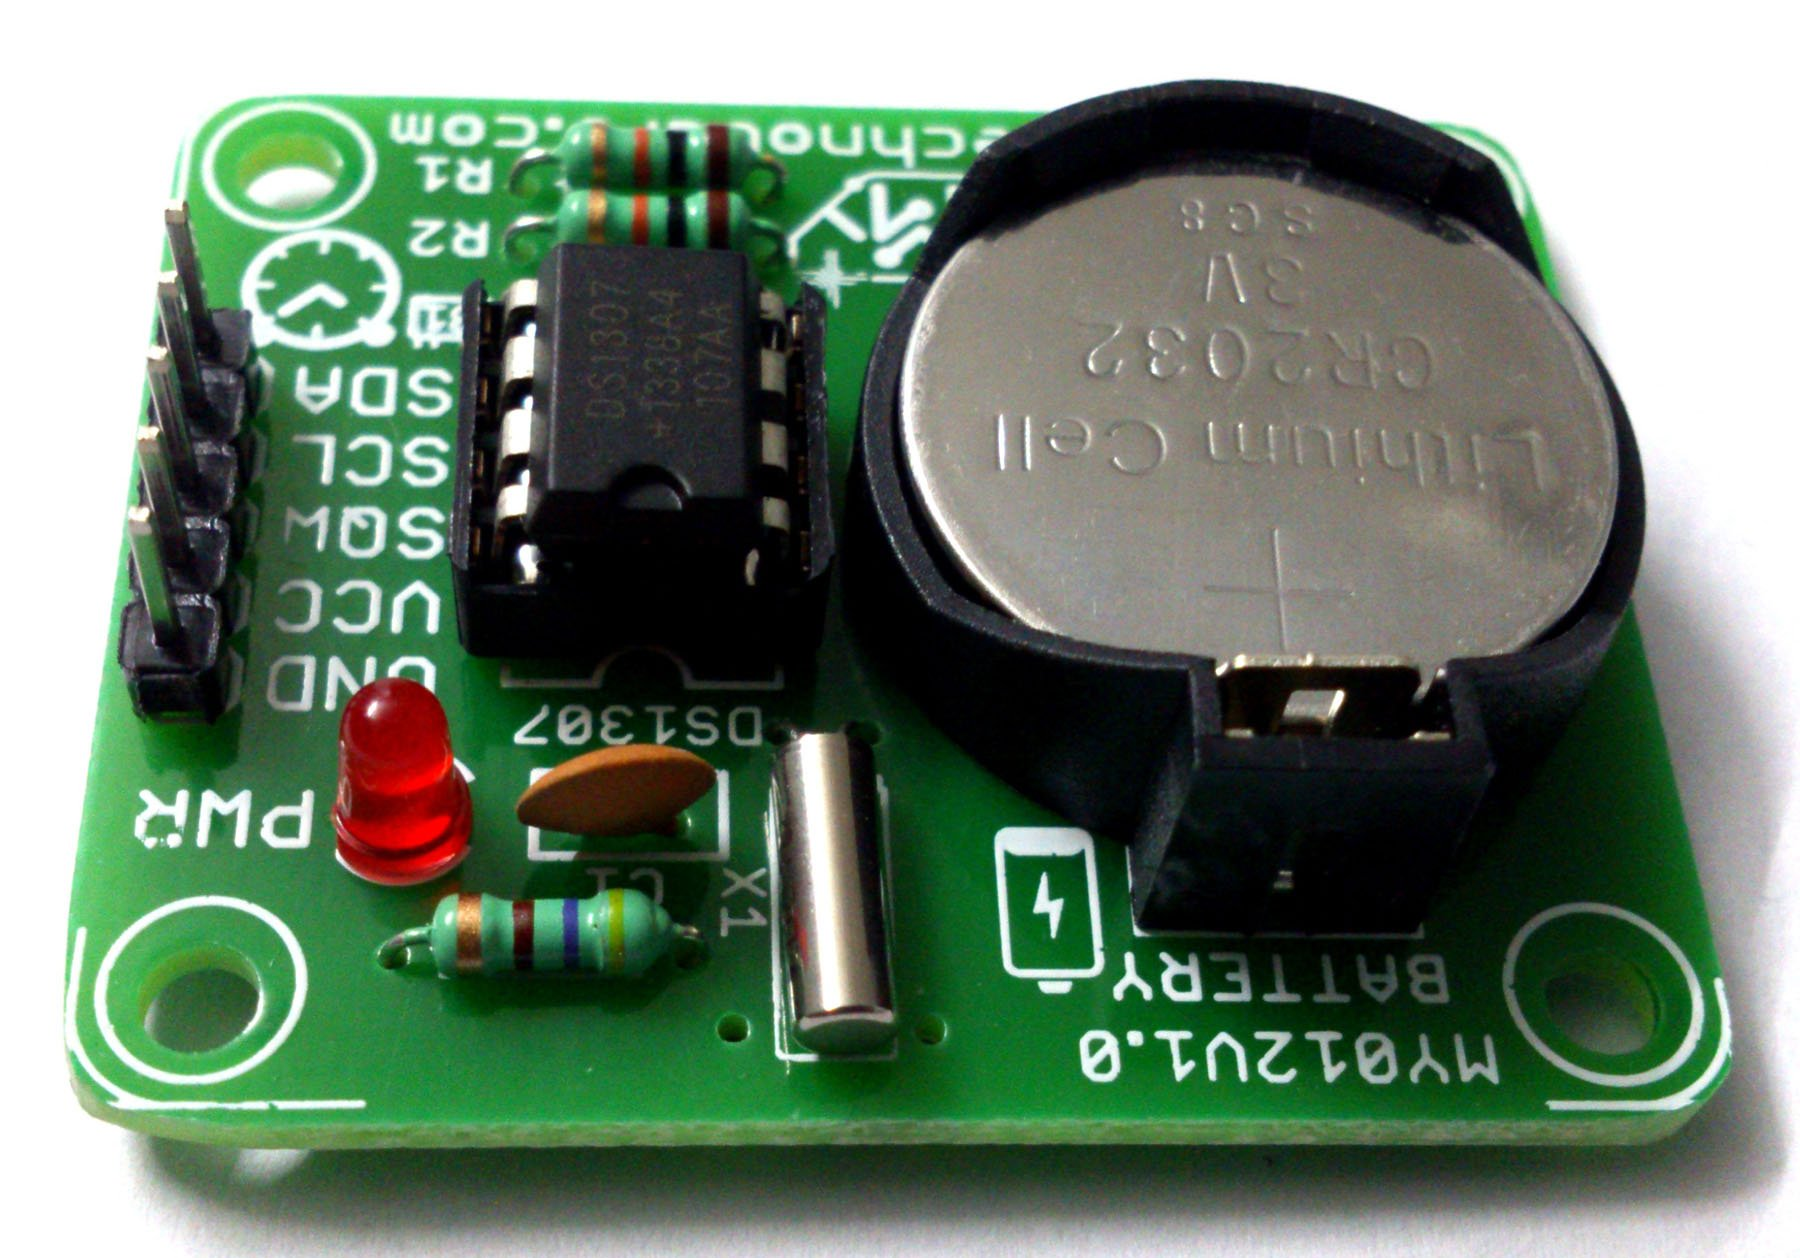 Ds1307 Rtc Module Real Time Clock Circuit For Microcontroller My Digital Using Pic And I2c Iic Free Batteryiic